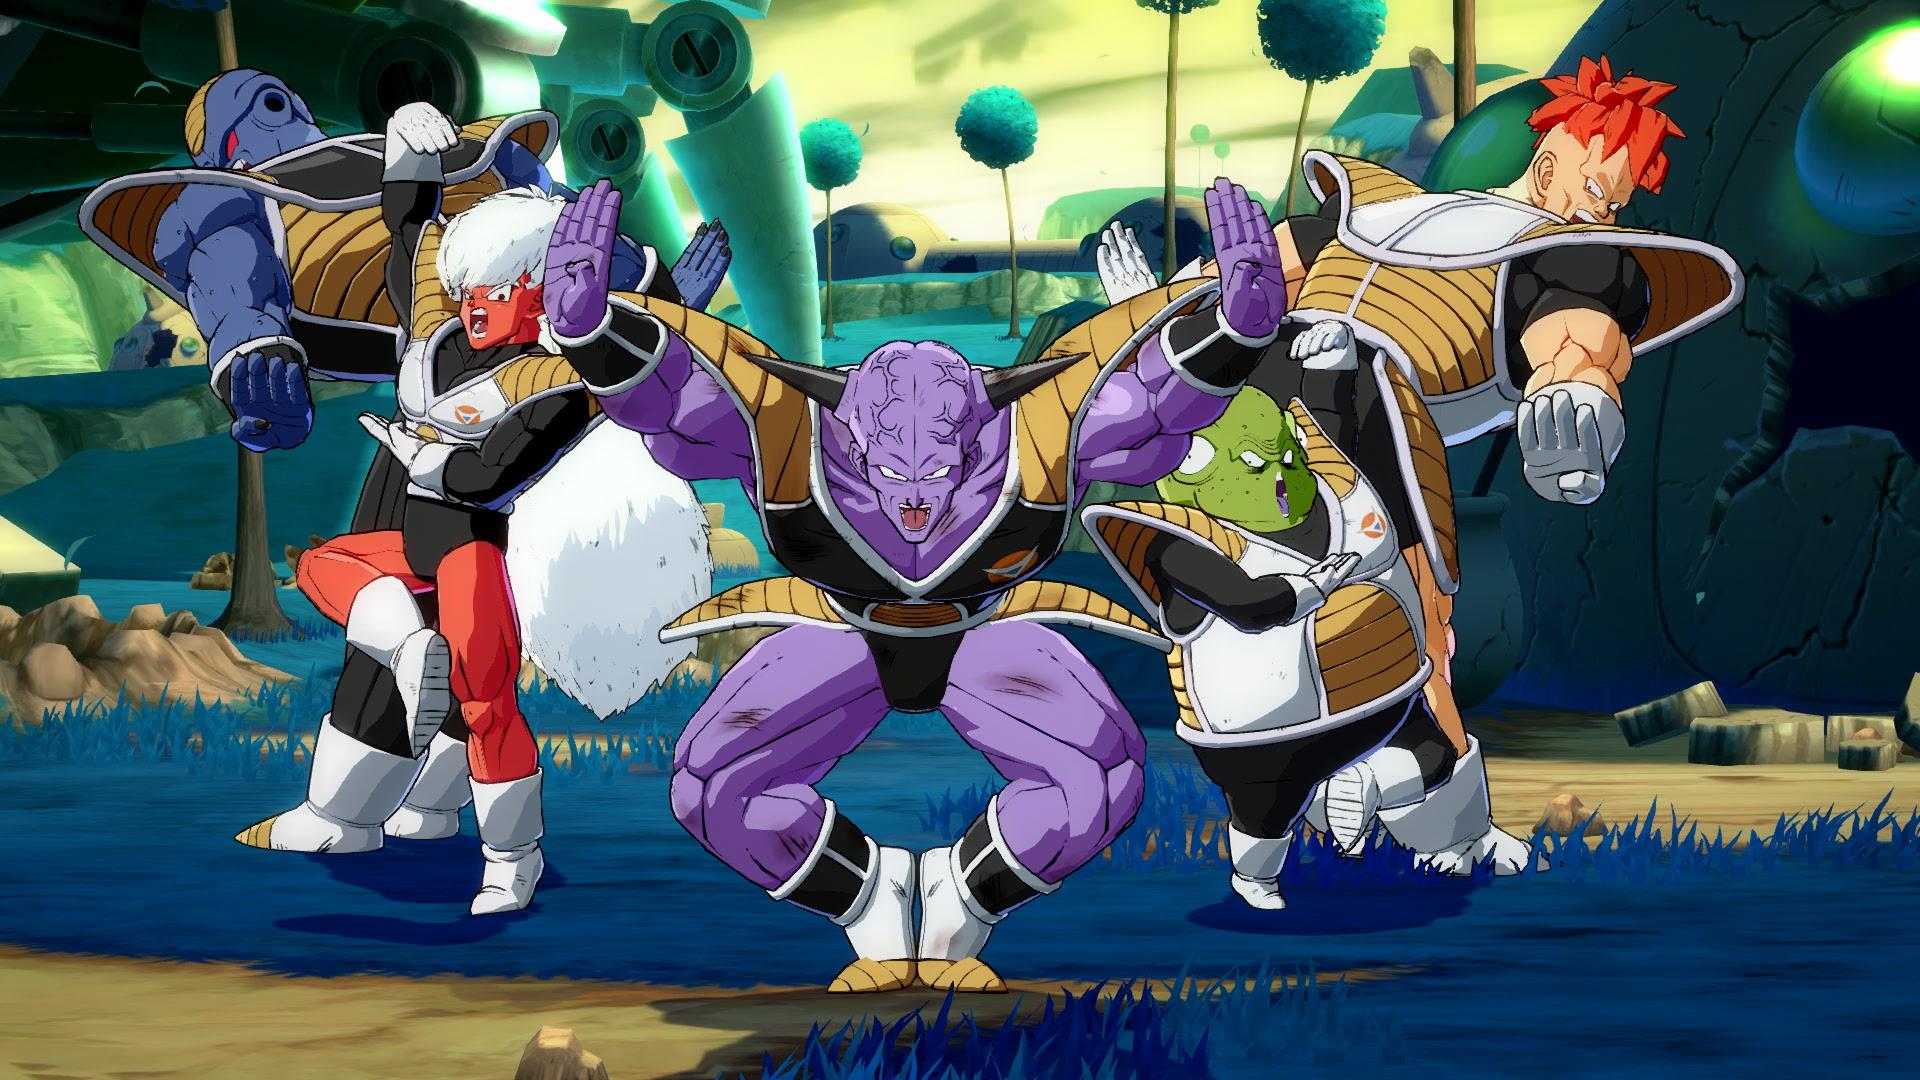 The most flamboyant team in the universe - Ginyu Force